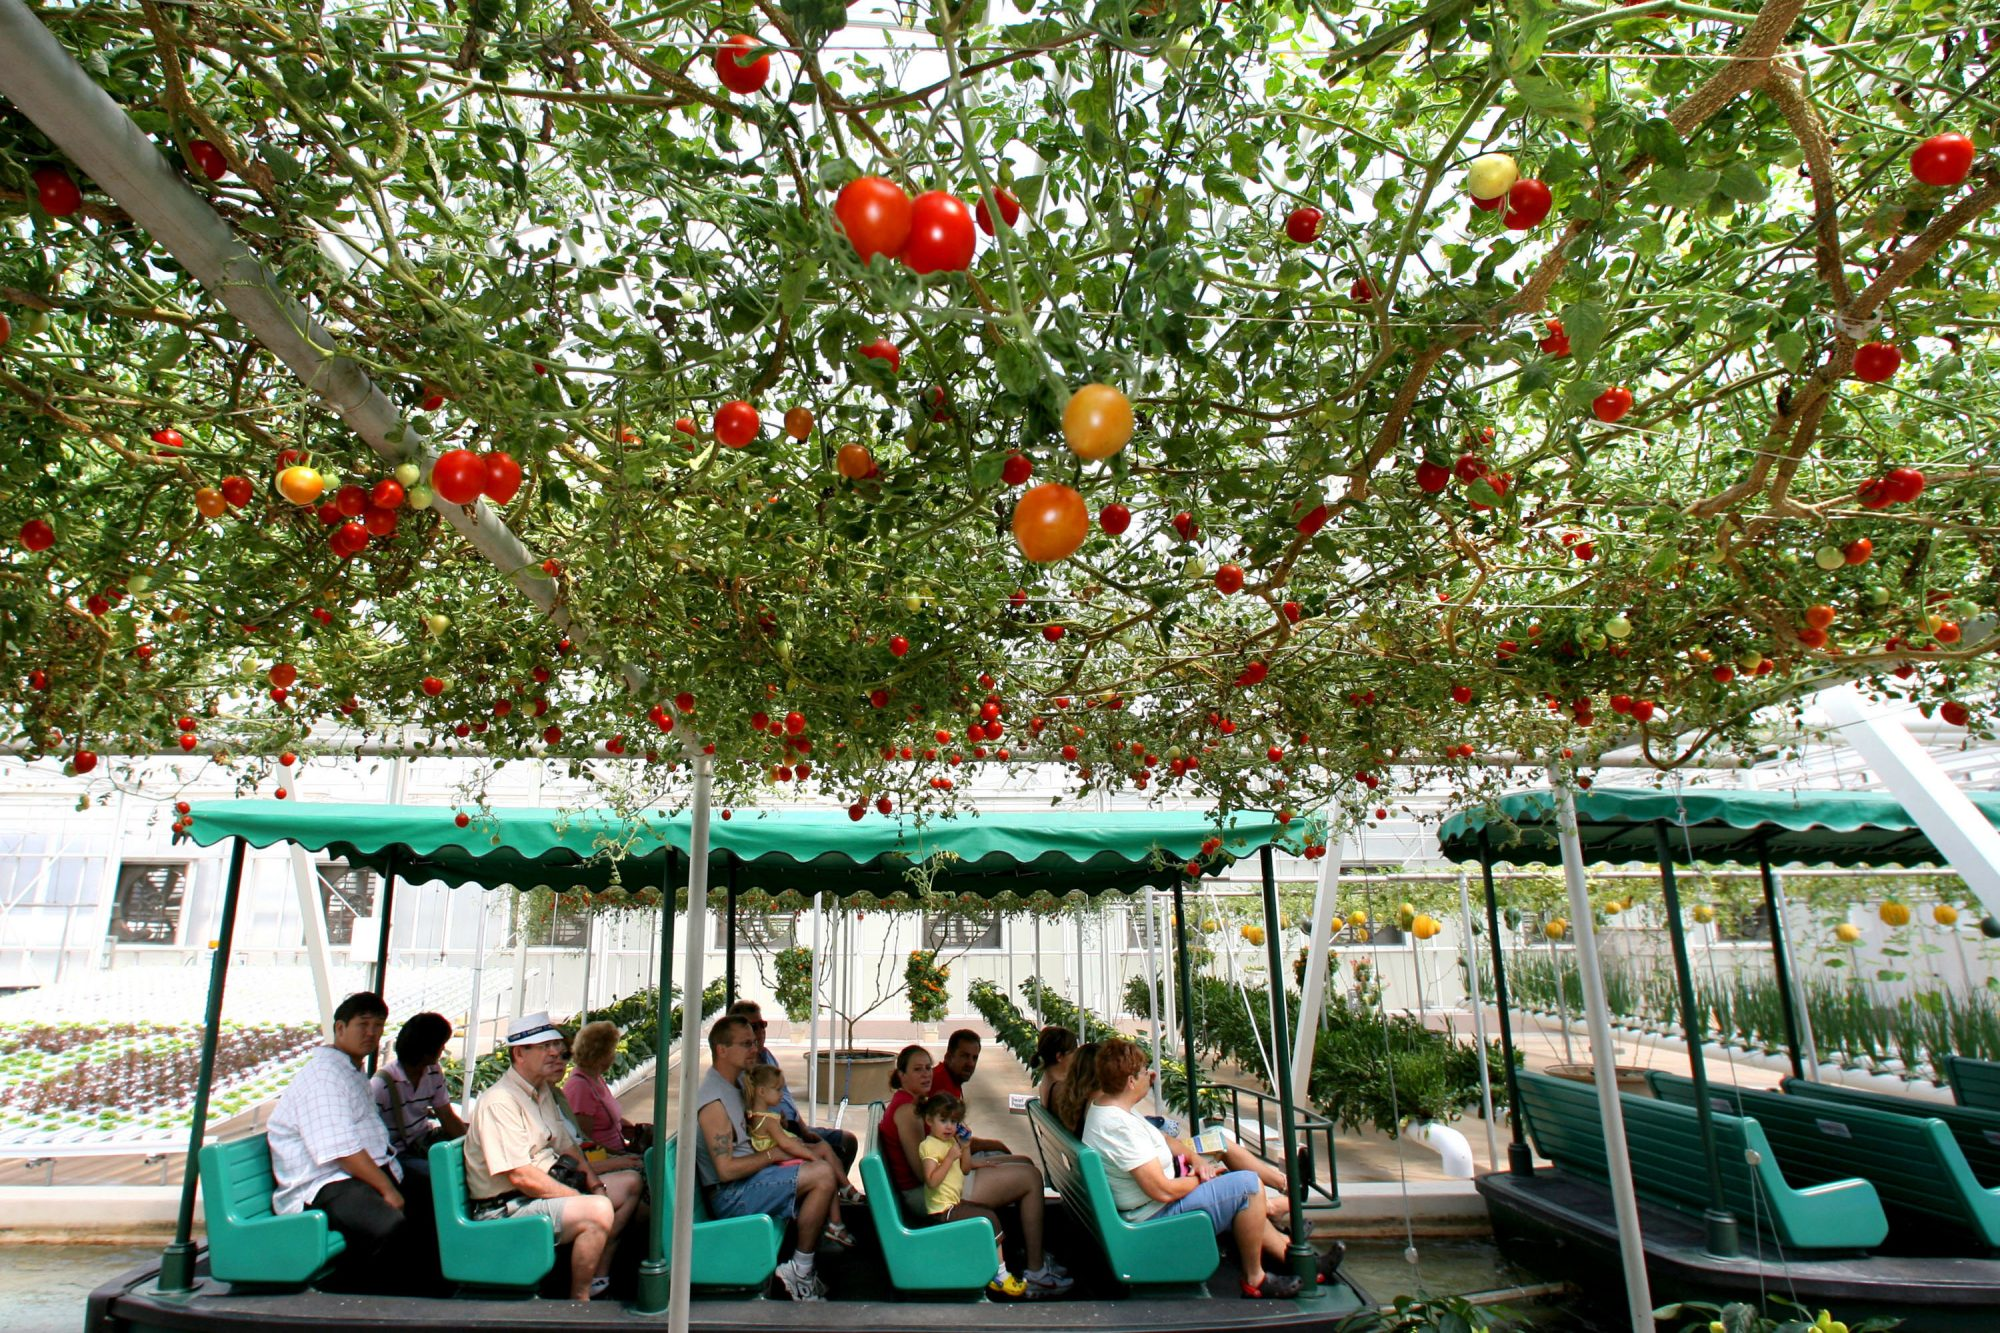 Disney World Has a Magical Greenhouse That Grows Mickey-shaped Pumpkins and 9-pound Lemons